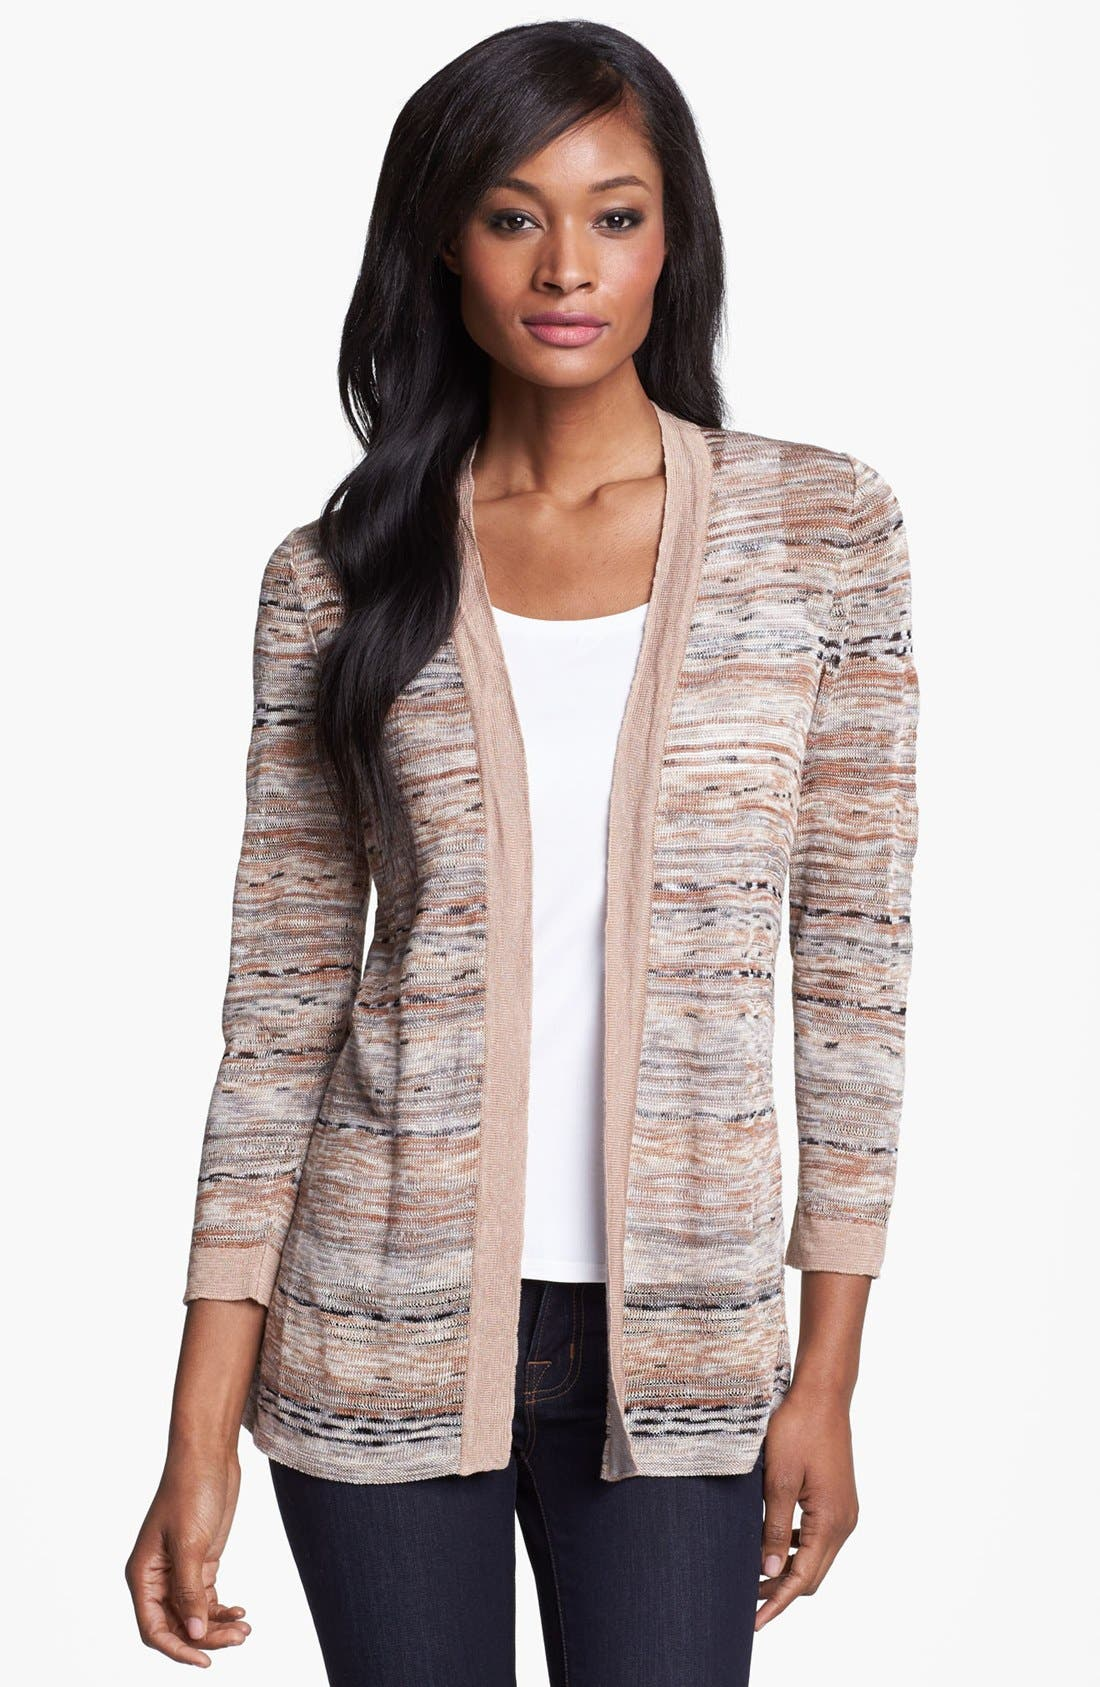 Alternate Image 1 Selected - Nic + Zoe 'Heat Mix' Cardigan (Petite)